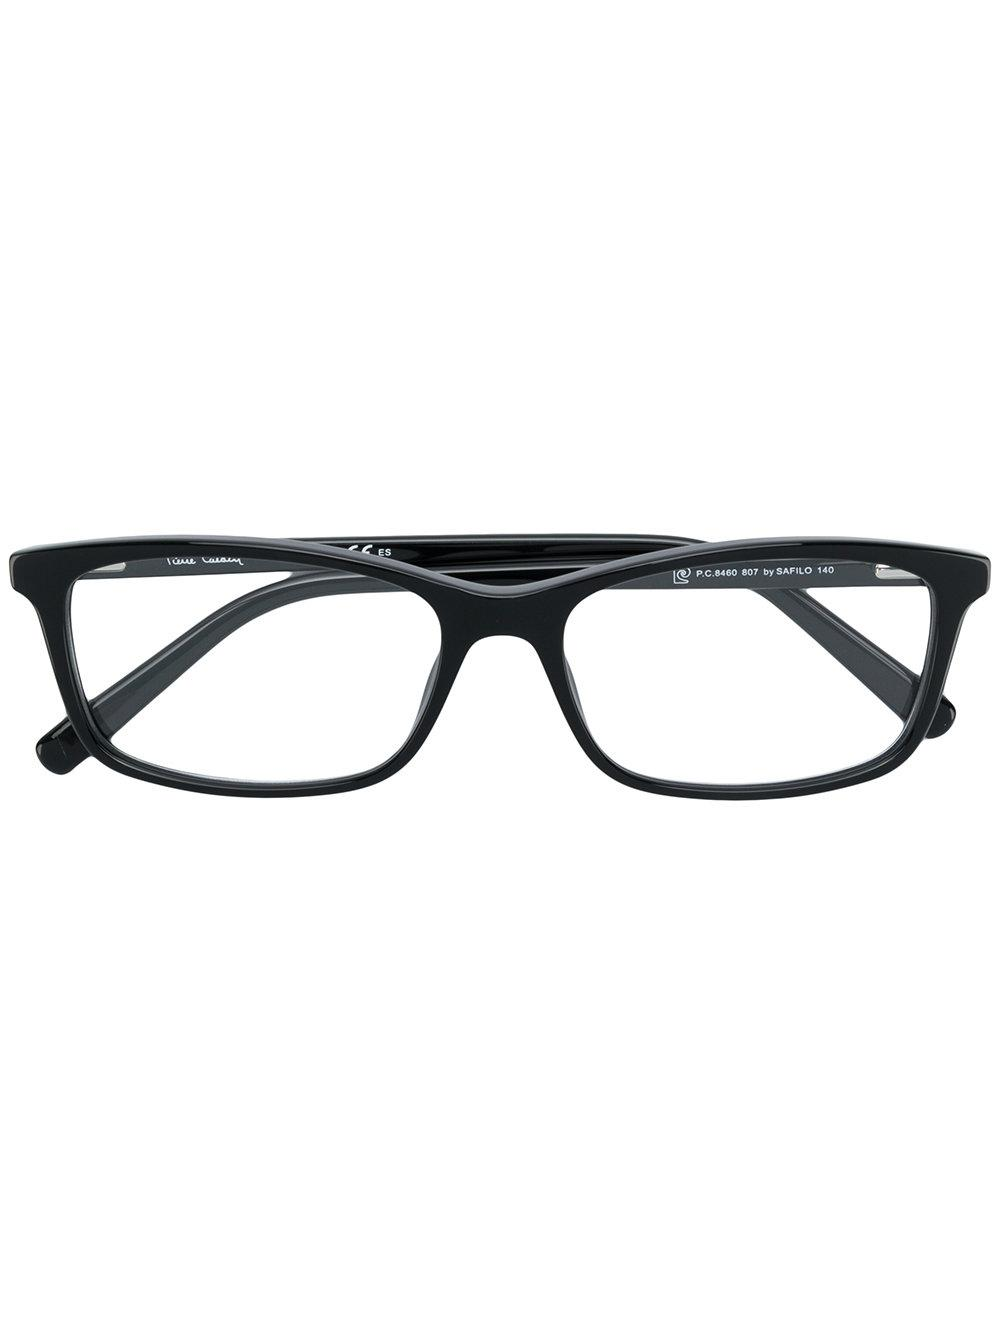 Pierre Cardin Eyewear Black